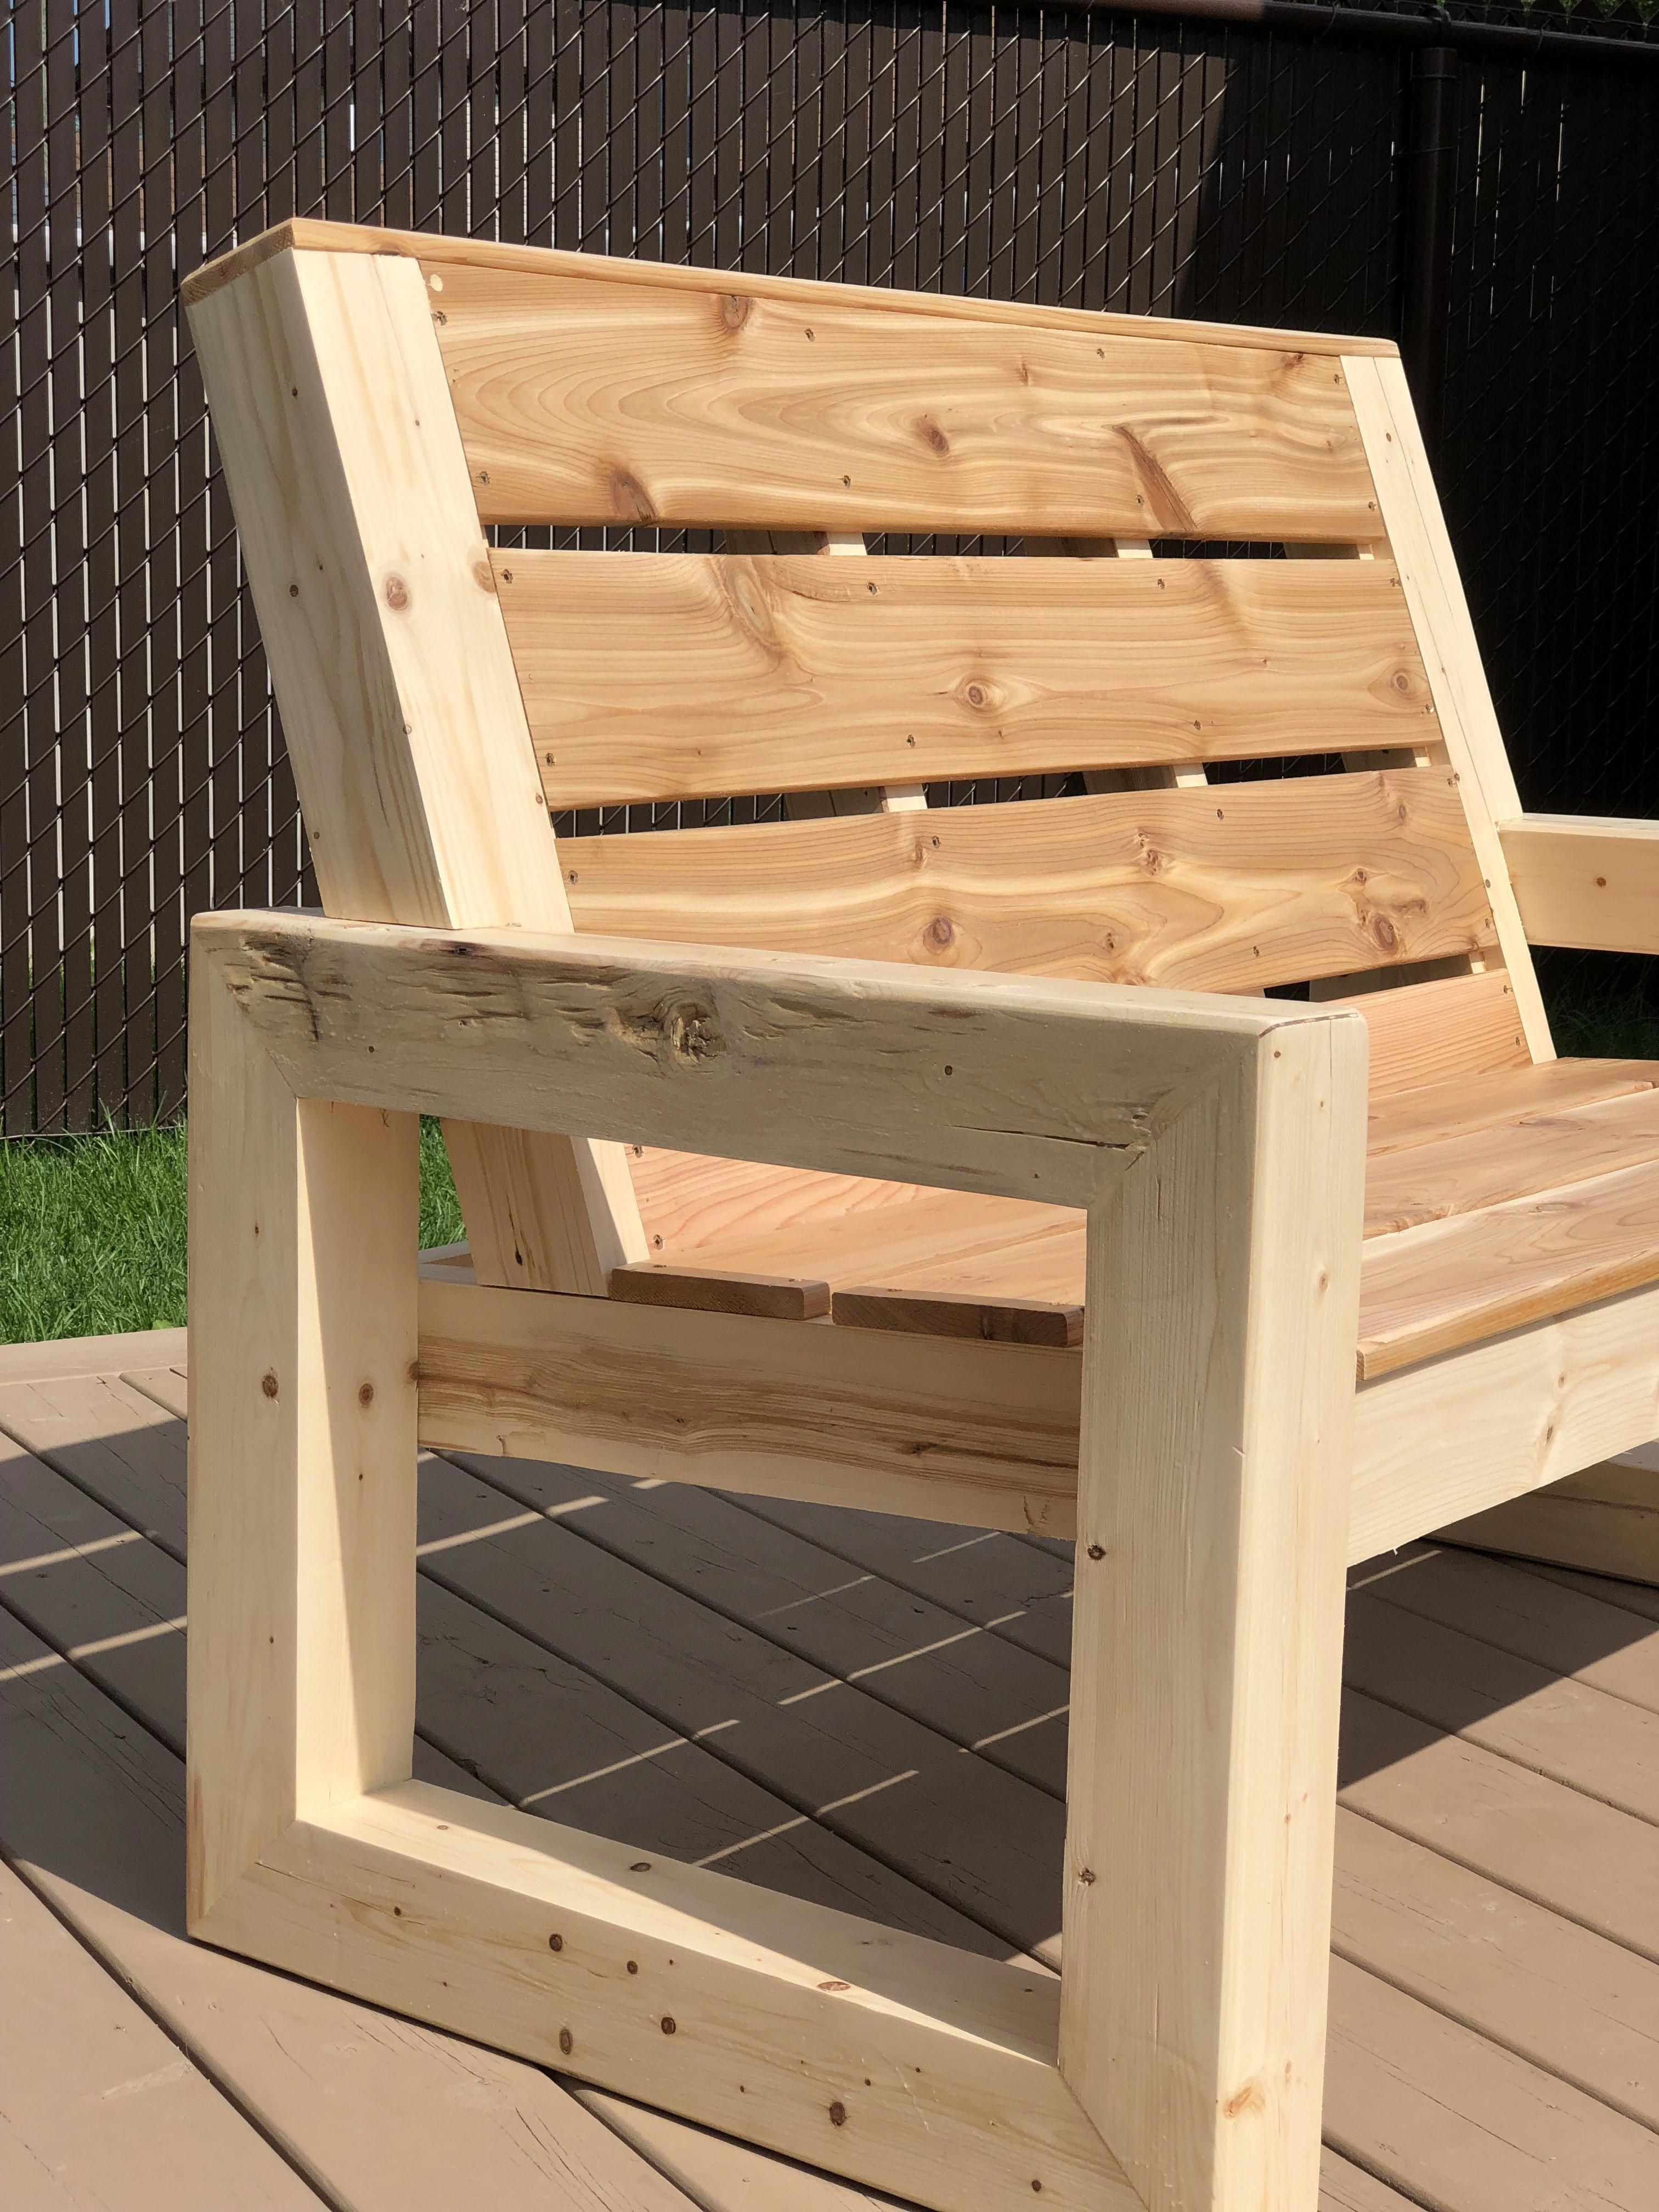 120 Cheap And Easy Rustic Diy Home Decor Diy Outdoor Furniture Plans Wood Furniture Diy Diy Wood Projects Furniture